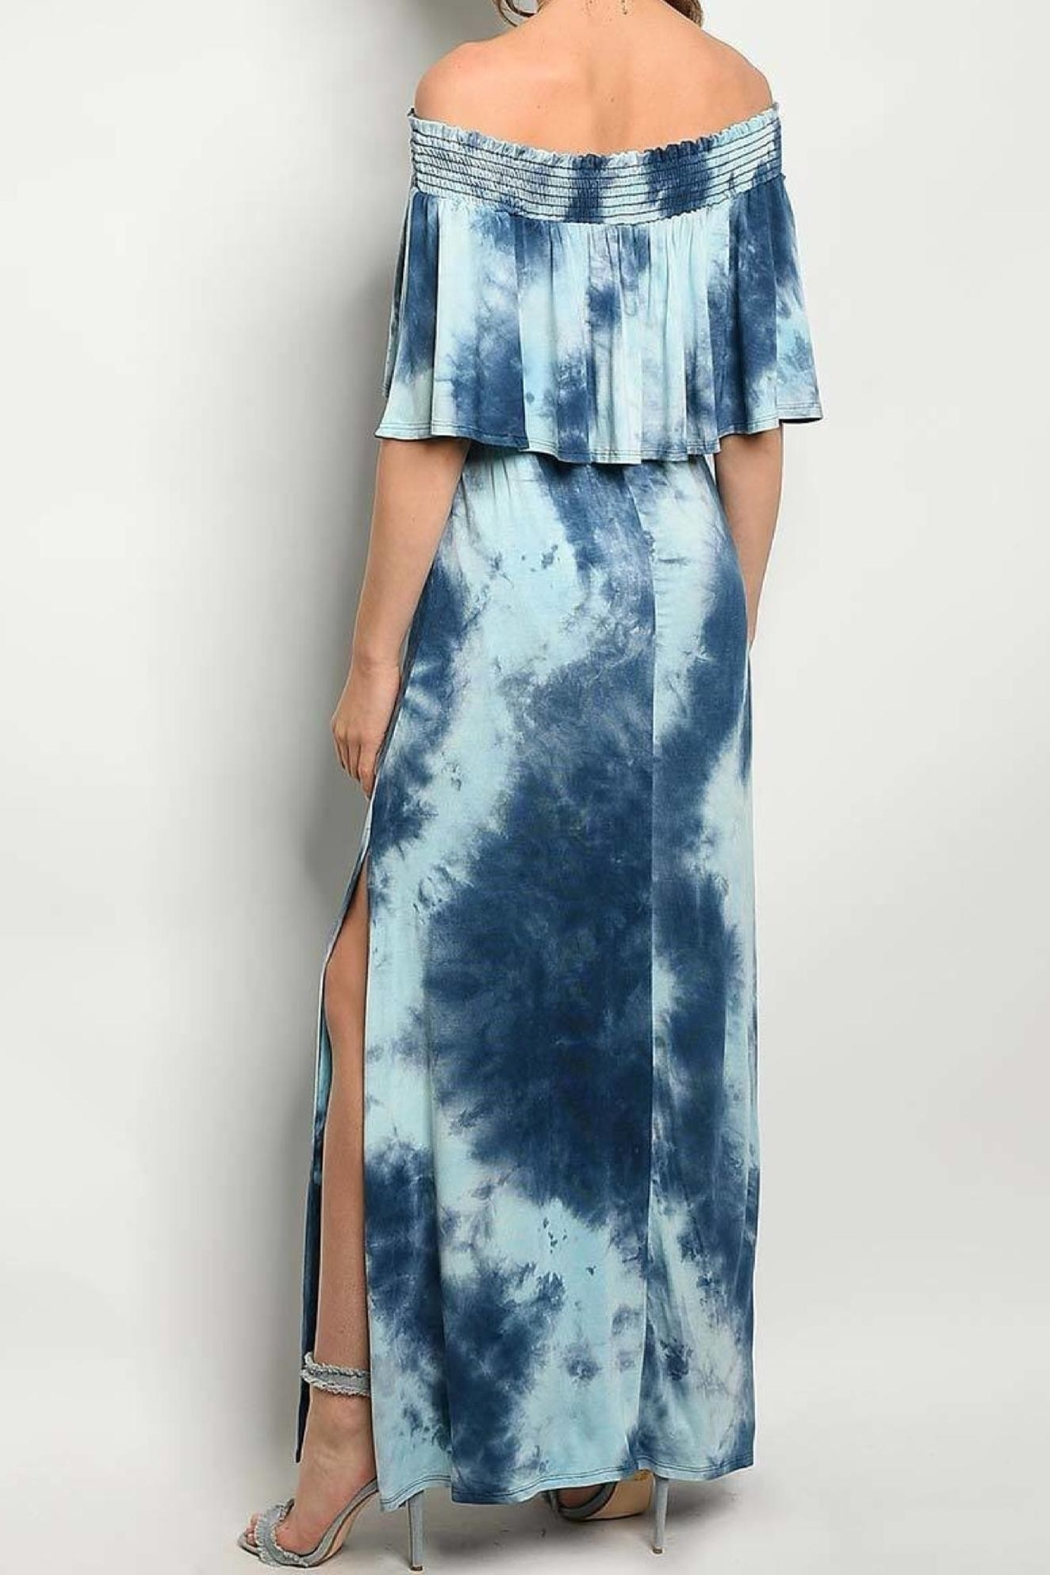 No Label  Tie-Dye Ruffled Dress - Front Full Image